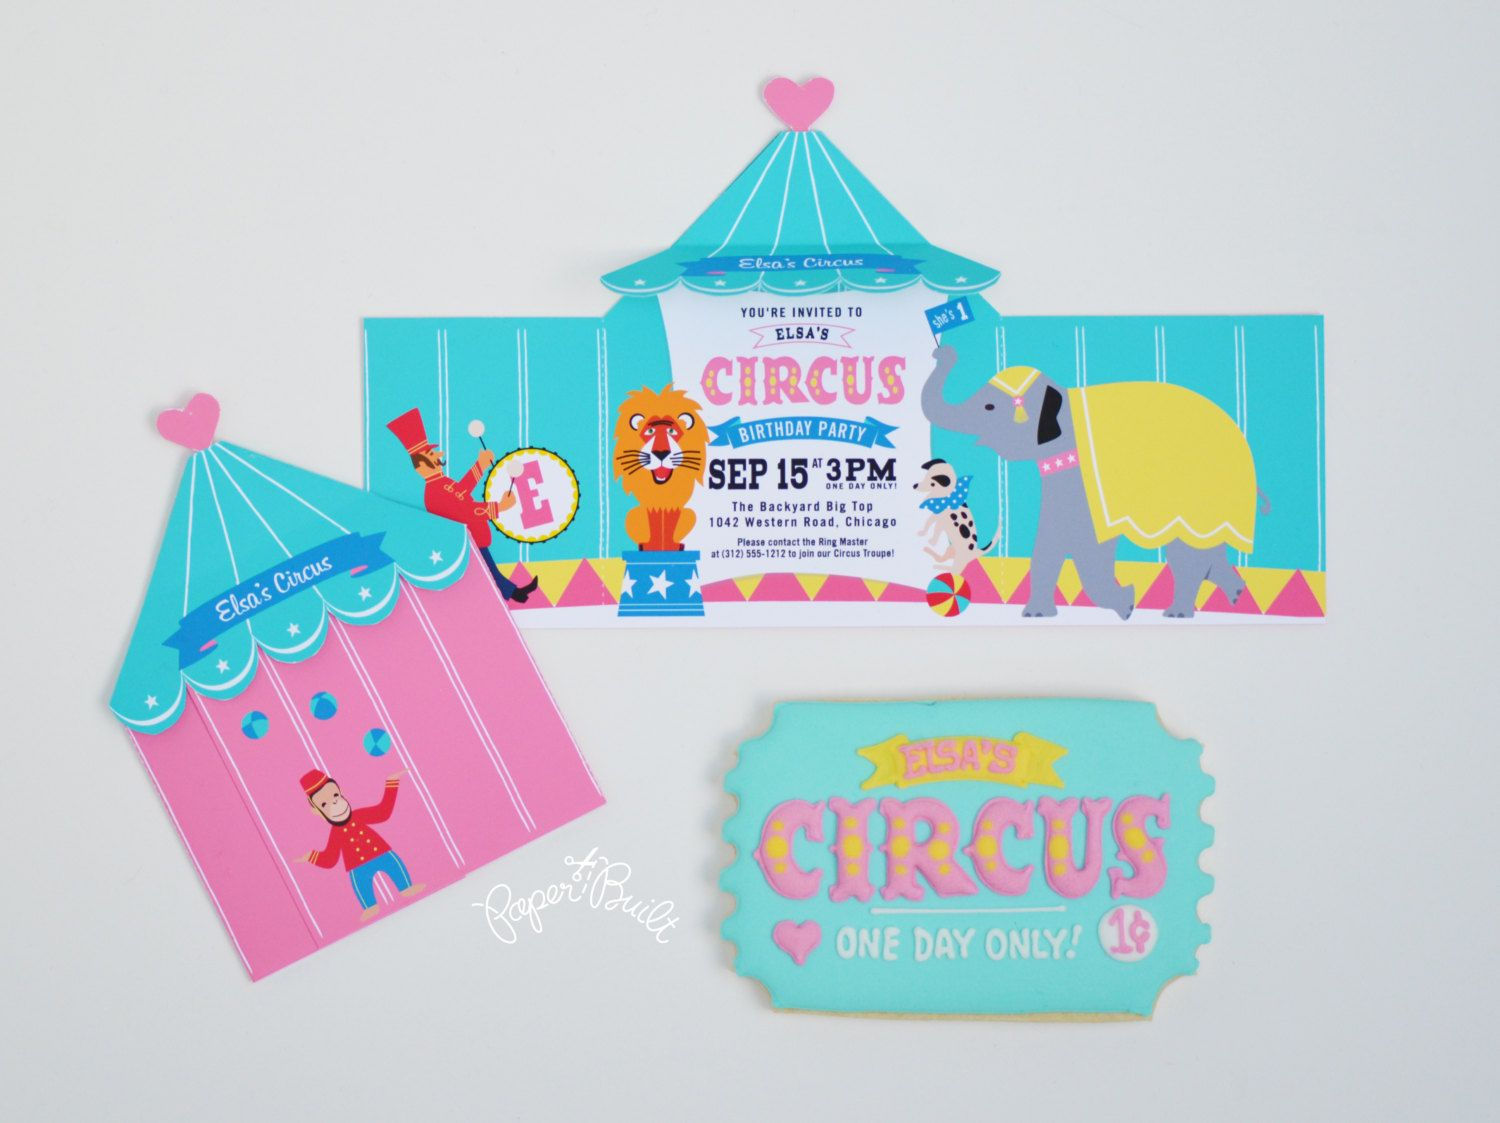 Circus Tent Invitation Printable Circus Invite by PaperBuiltShop  sc 1 st  Pinterest & Circus Tent Invitation Printable Circus Invite by PaperBuiltShop ...